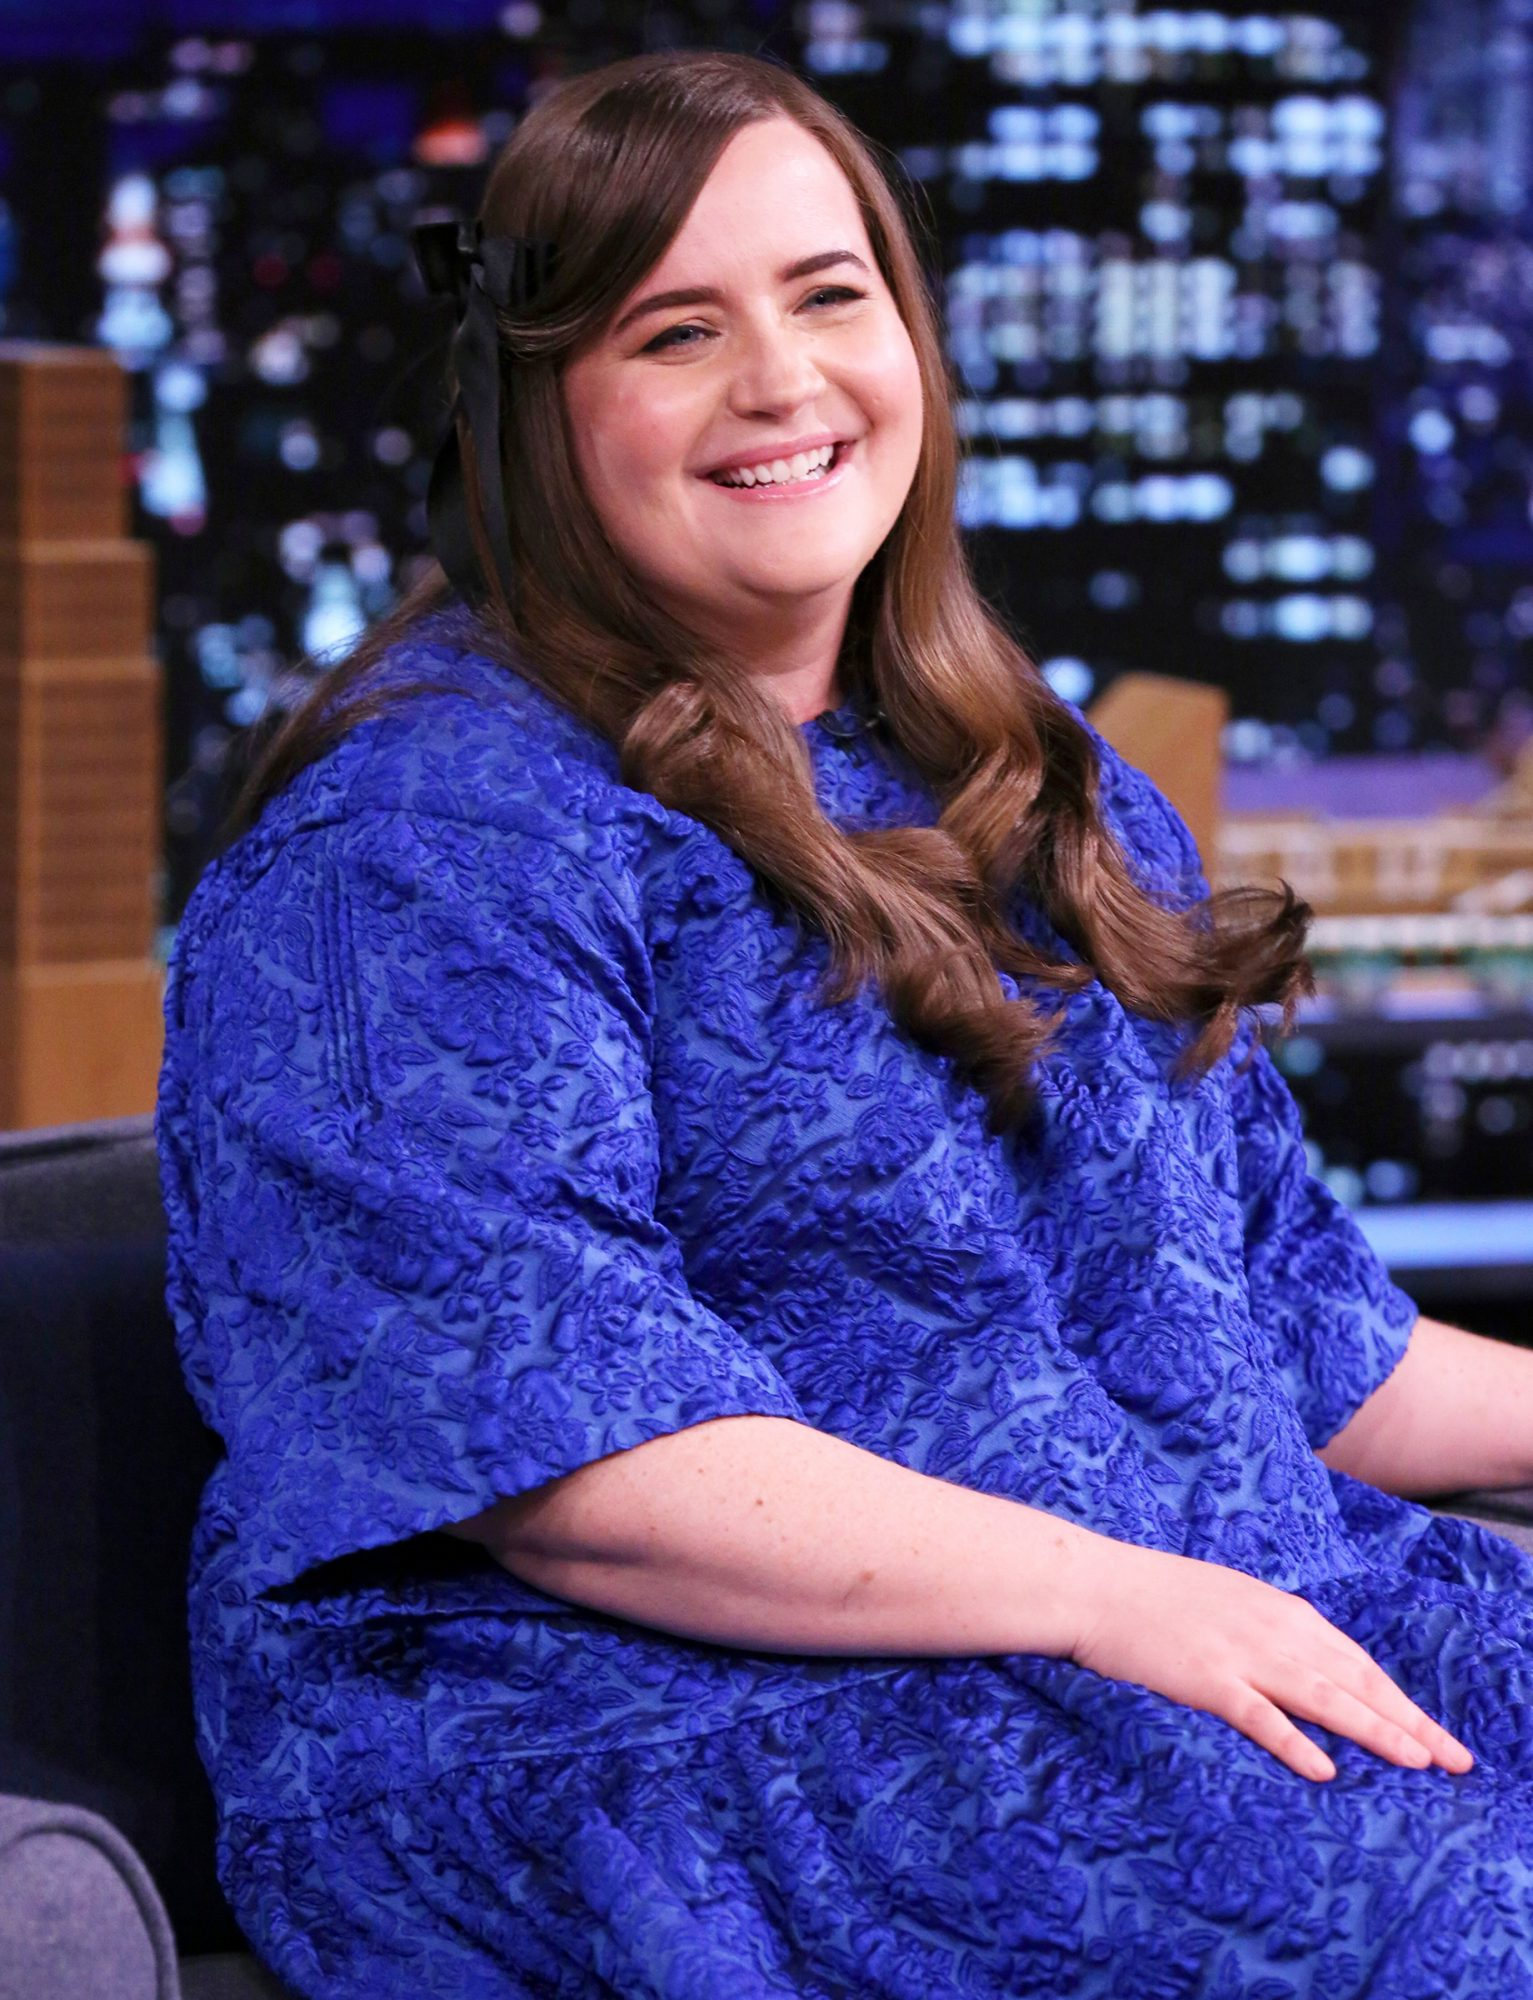 Aidy Bryant during an interview on Monday, May 3, 2021